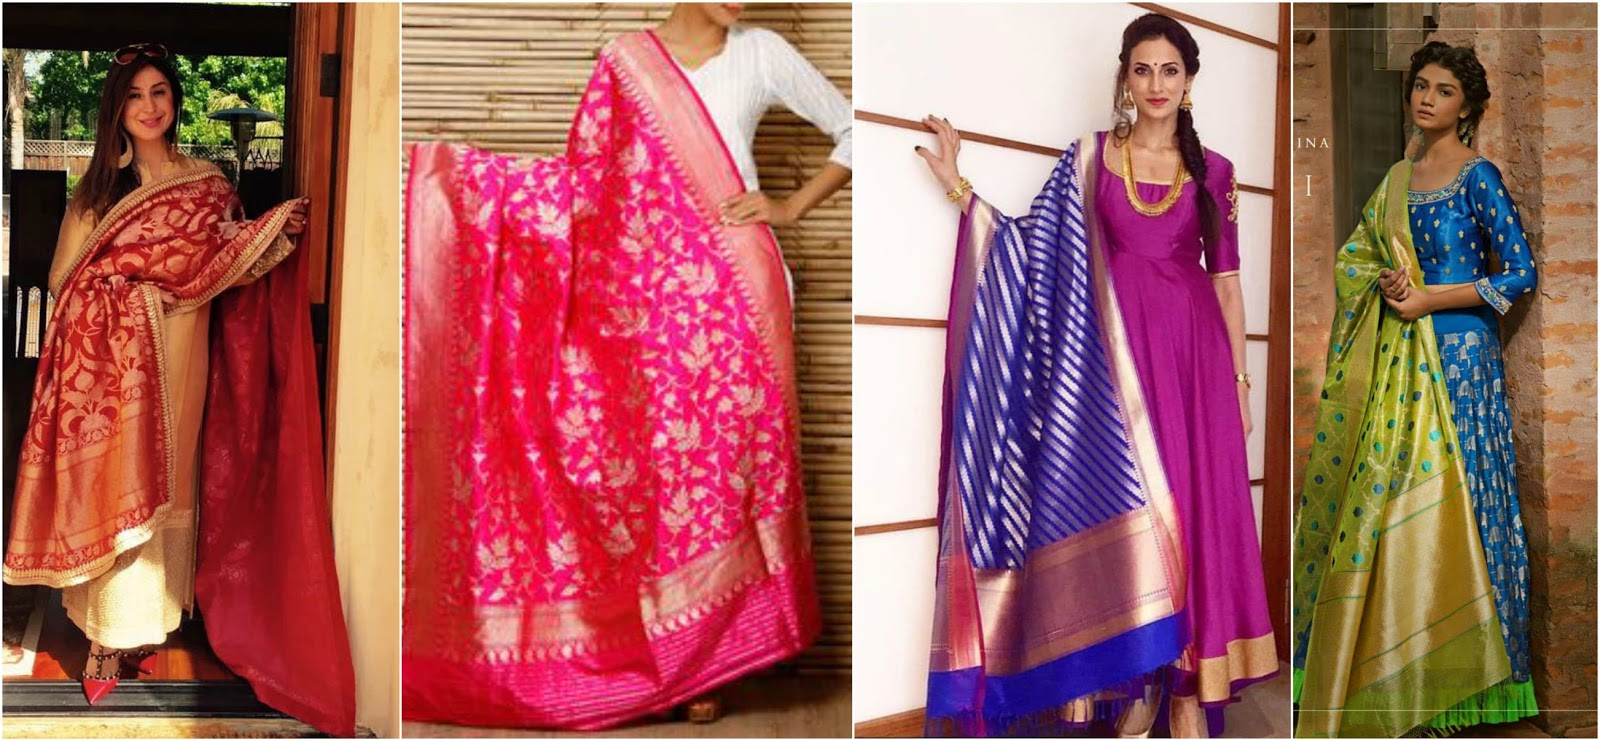 10 Ethnic Wear Outfits All Desi Girls Should Have In Their